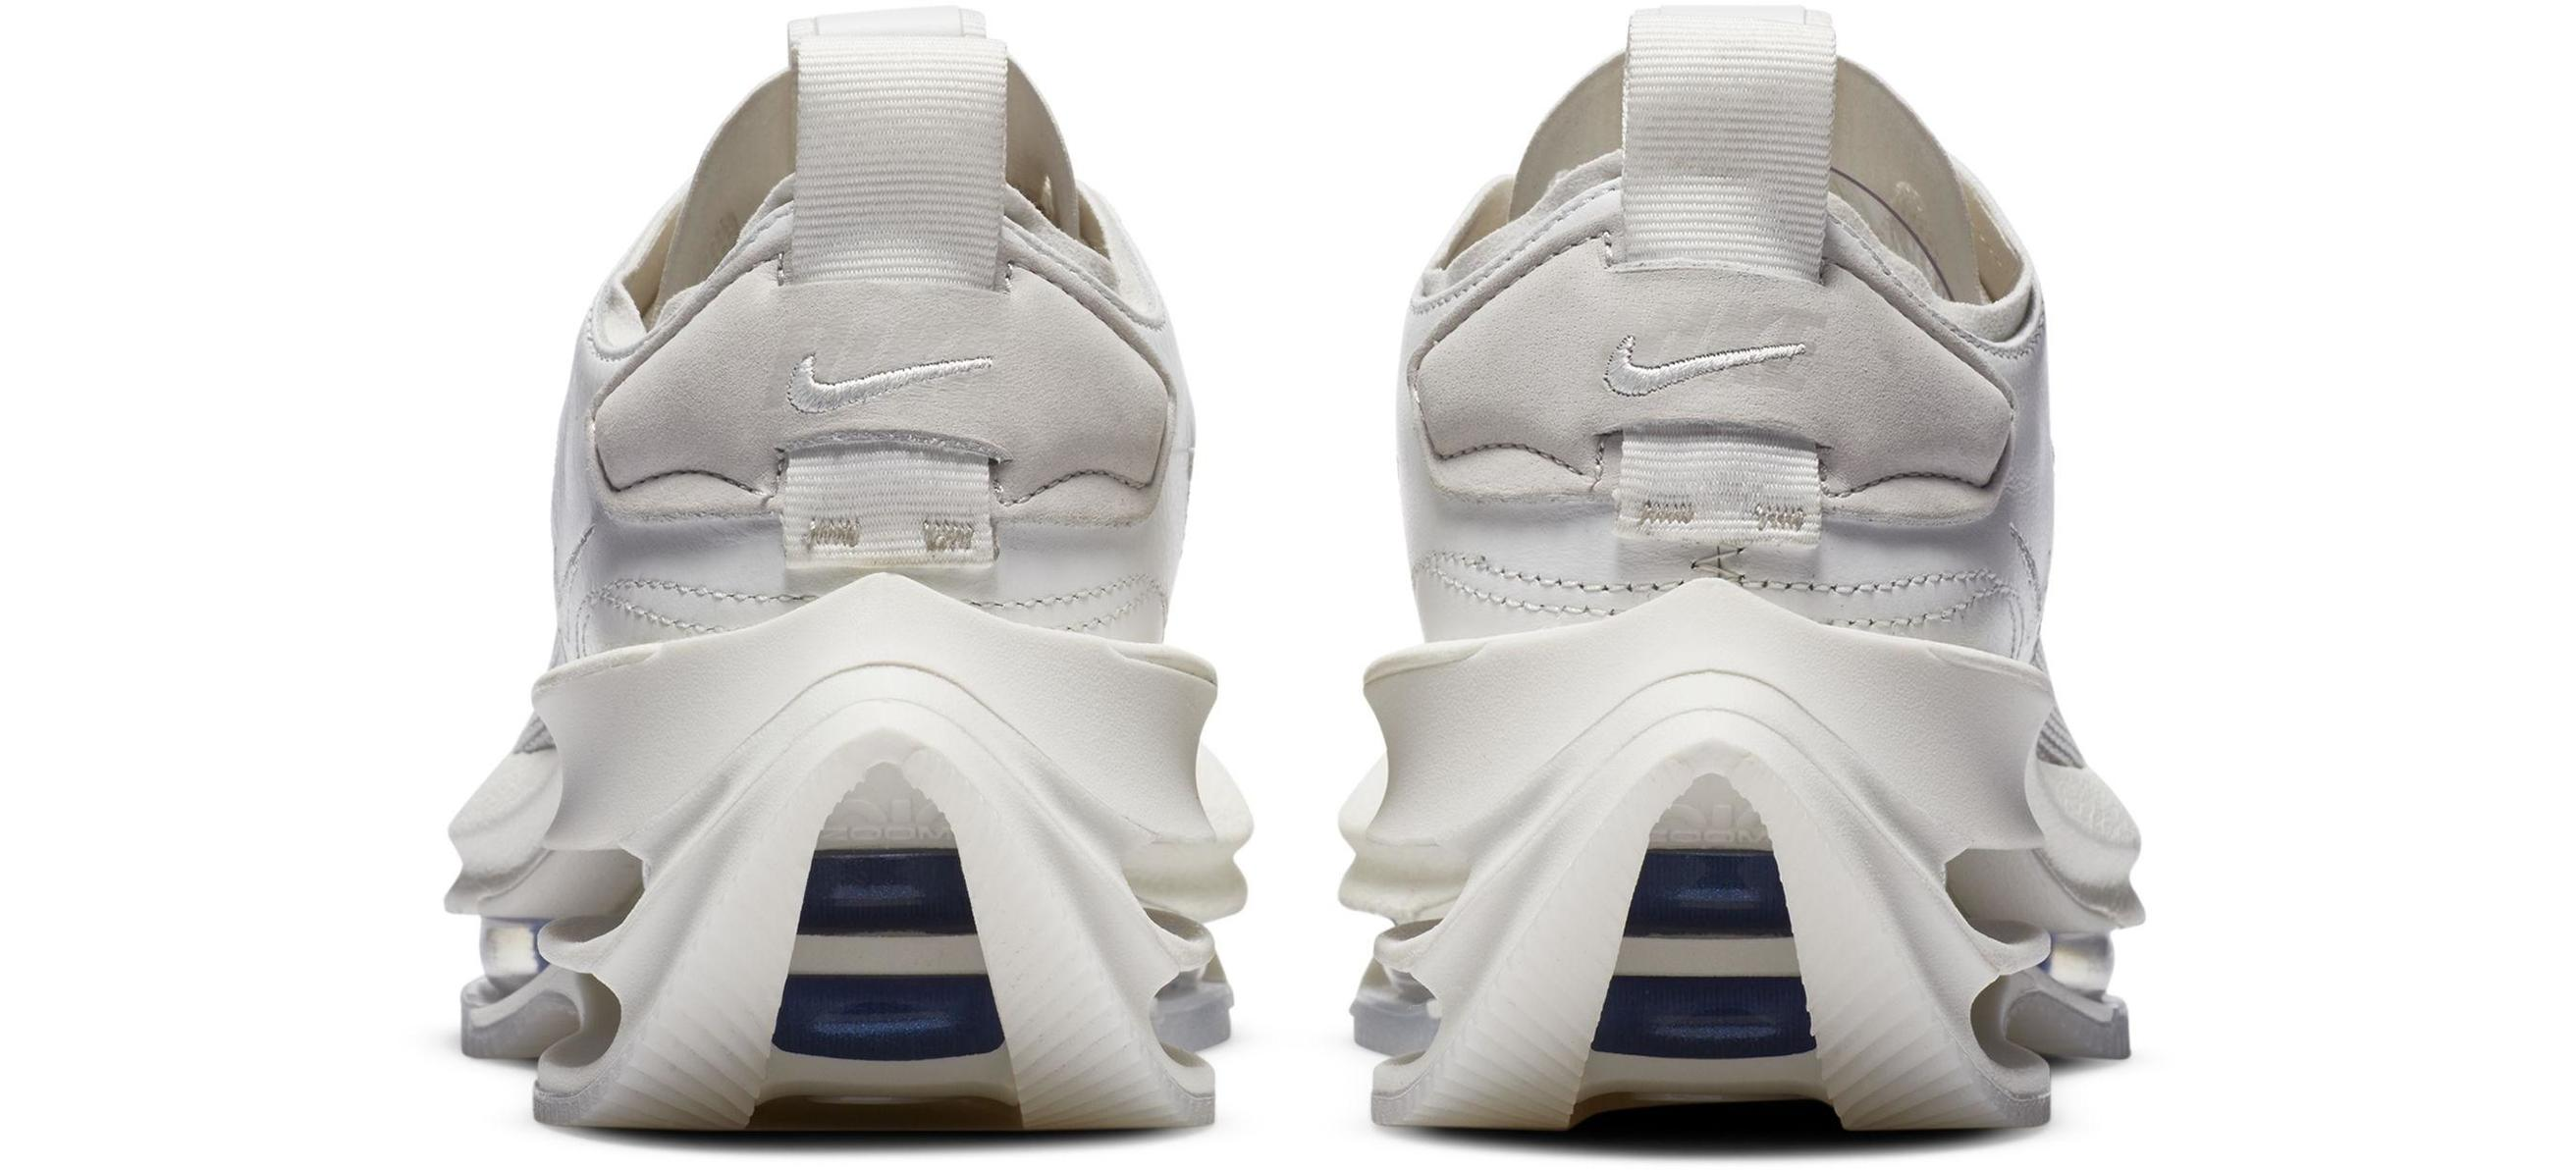 Nike Zoom Double Stacked Summit White/Hyper Blue/Black/Sail